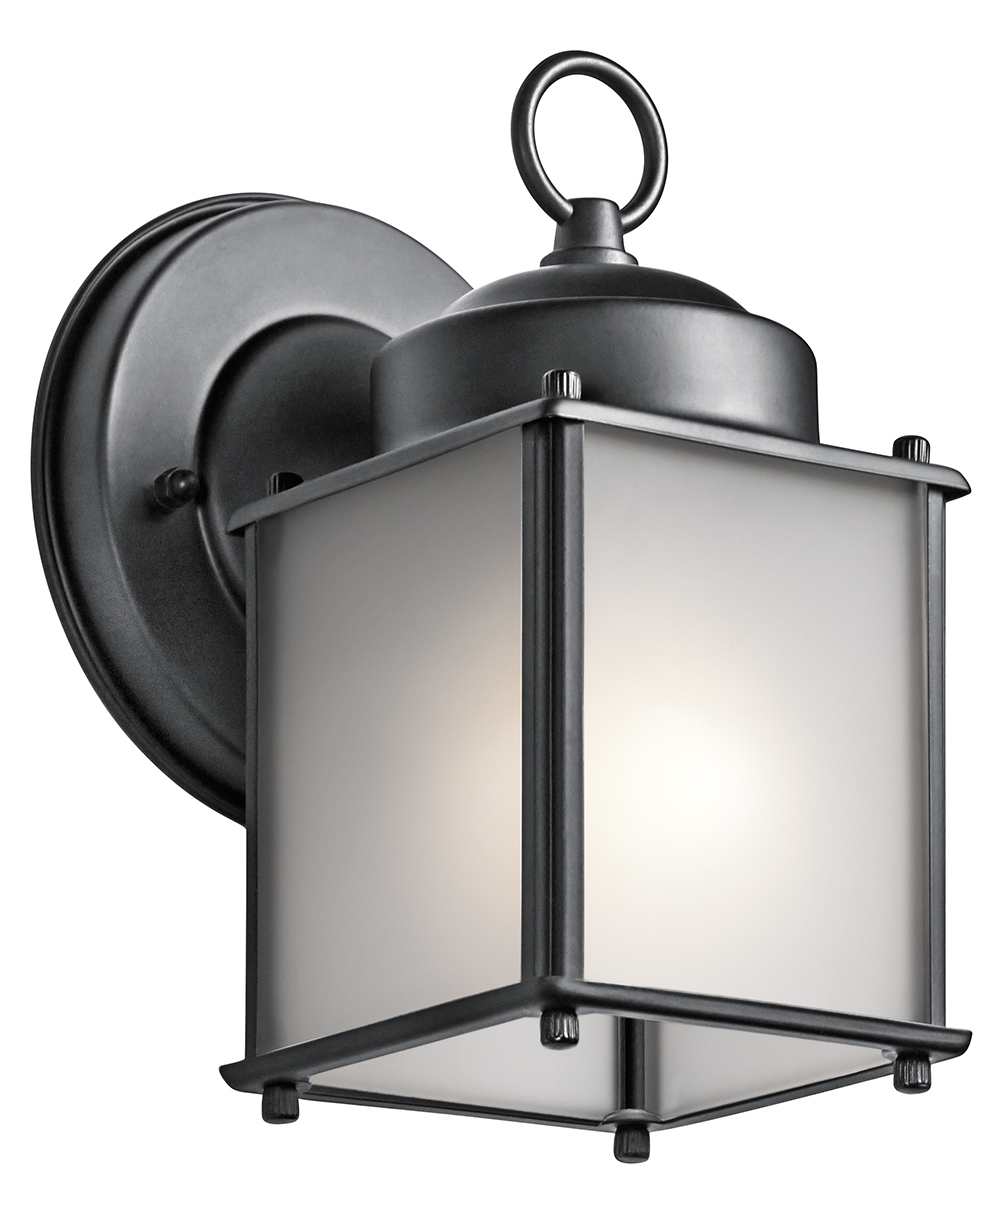 Kichler Black 1 Light 8In. Outdoor Wall Light